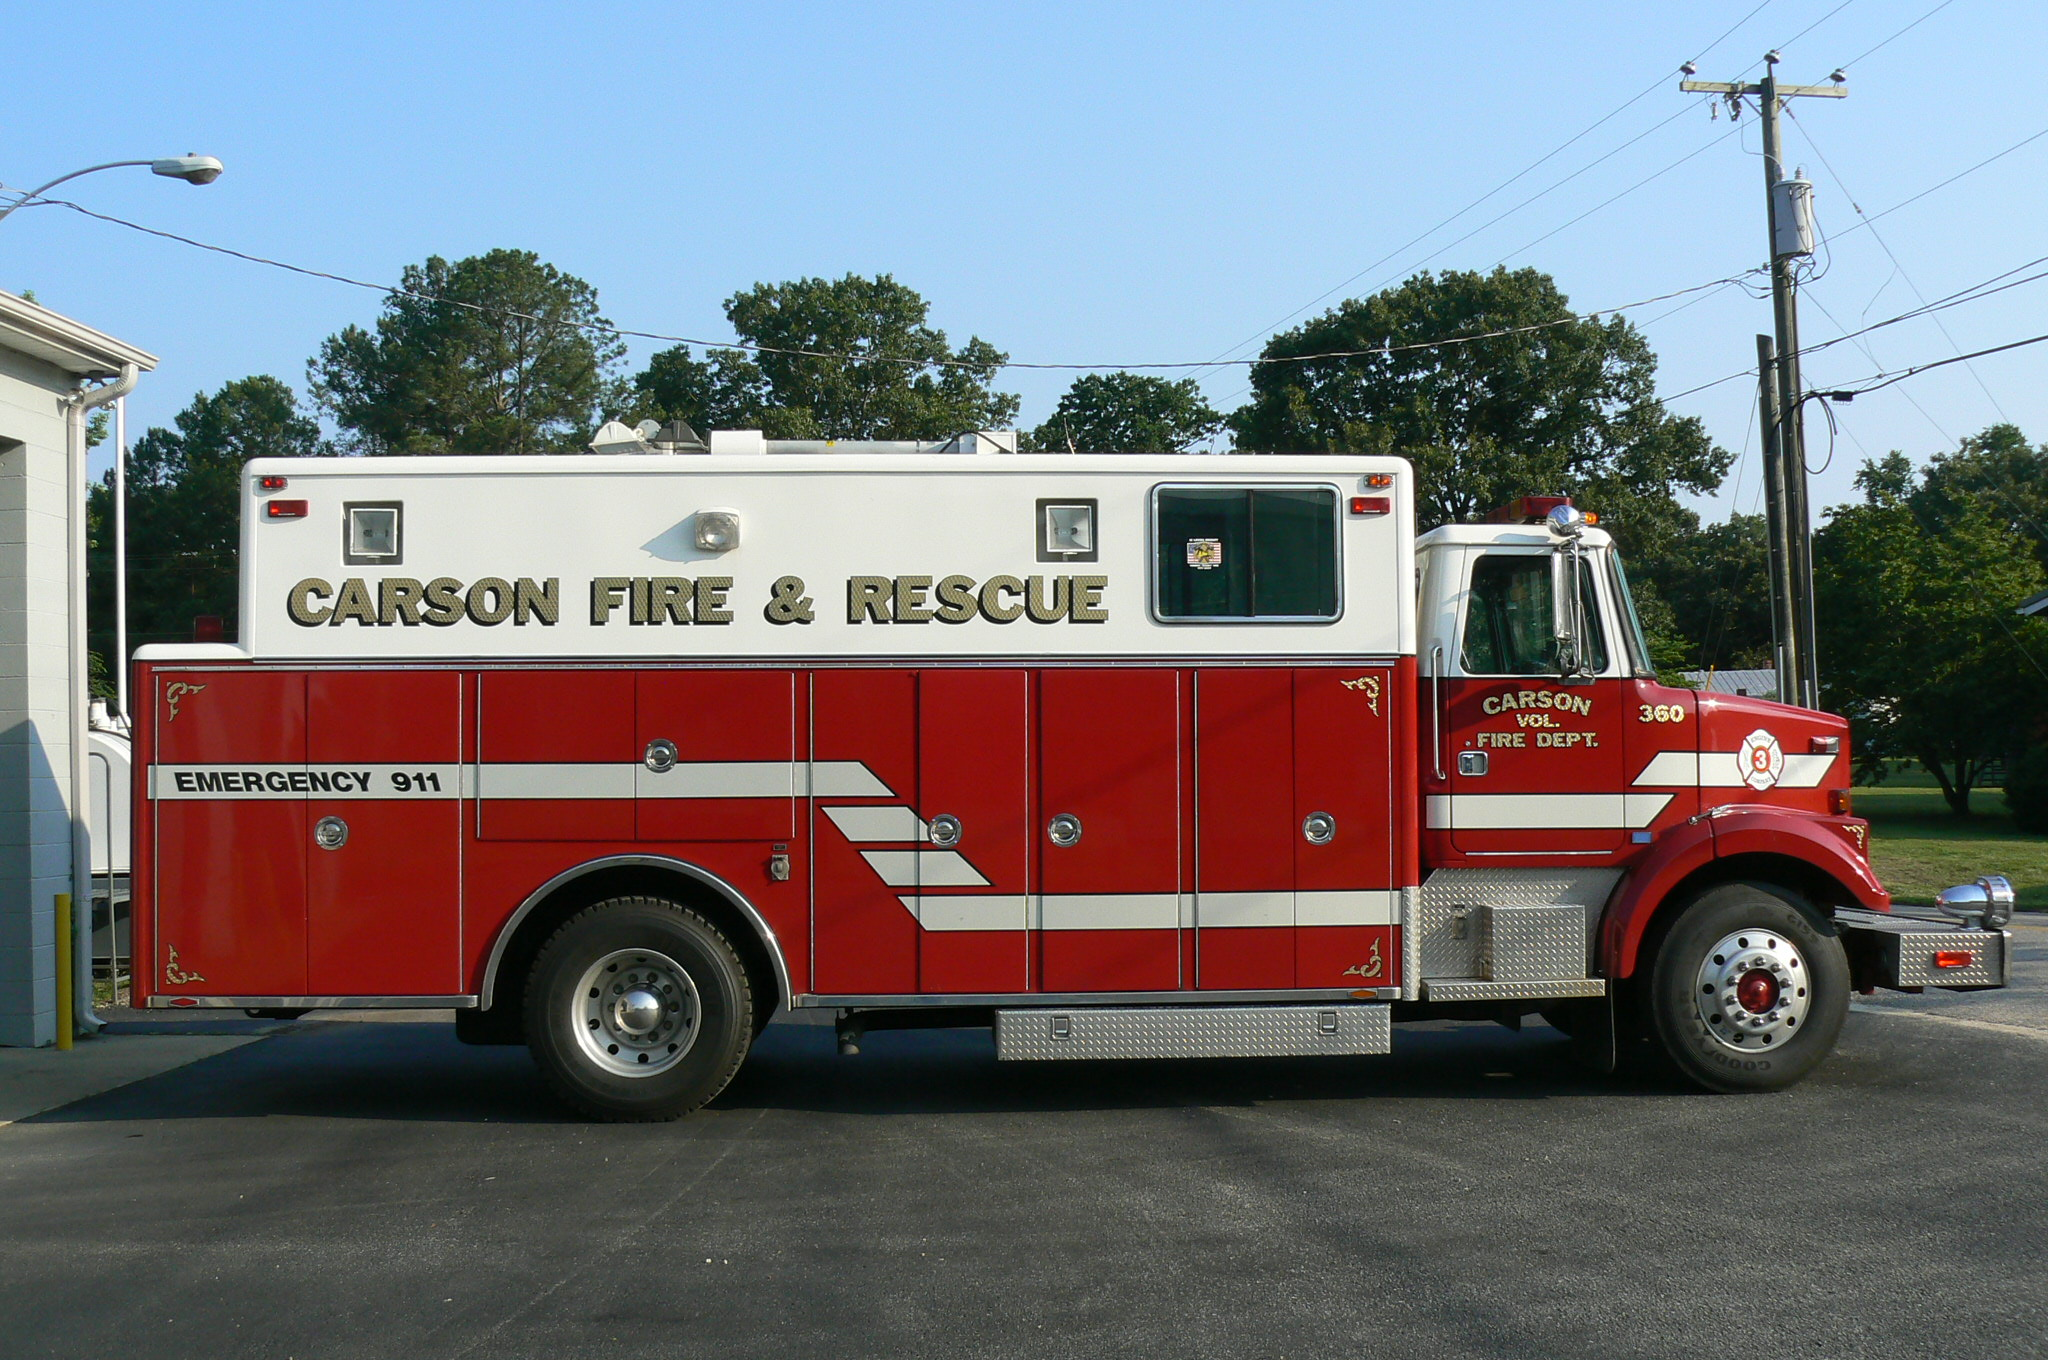 Red fire squad truck